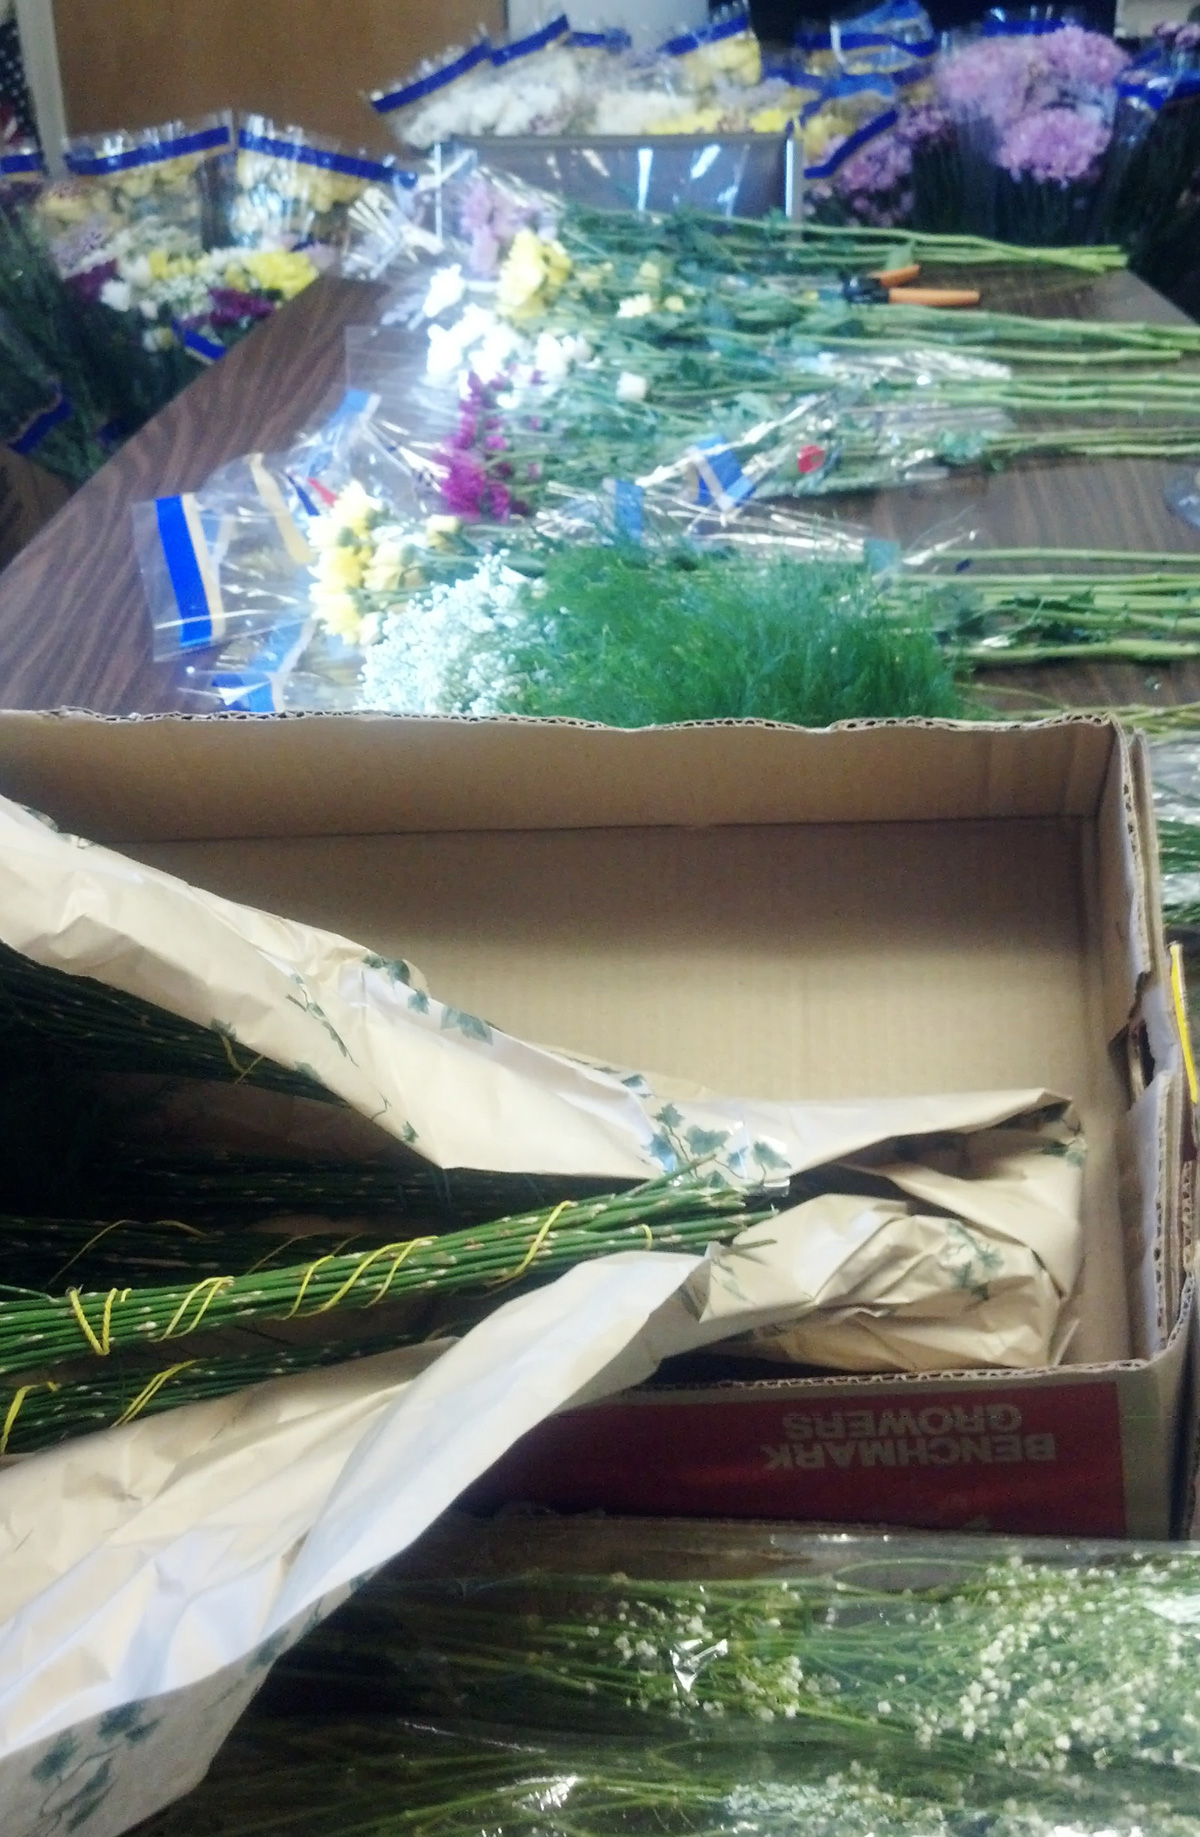 Mother's Day Celebration at Cedar Lawn - Preparing the Bouquets